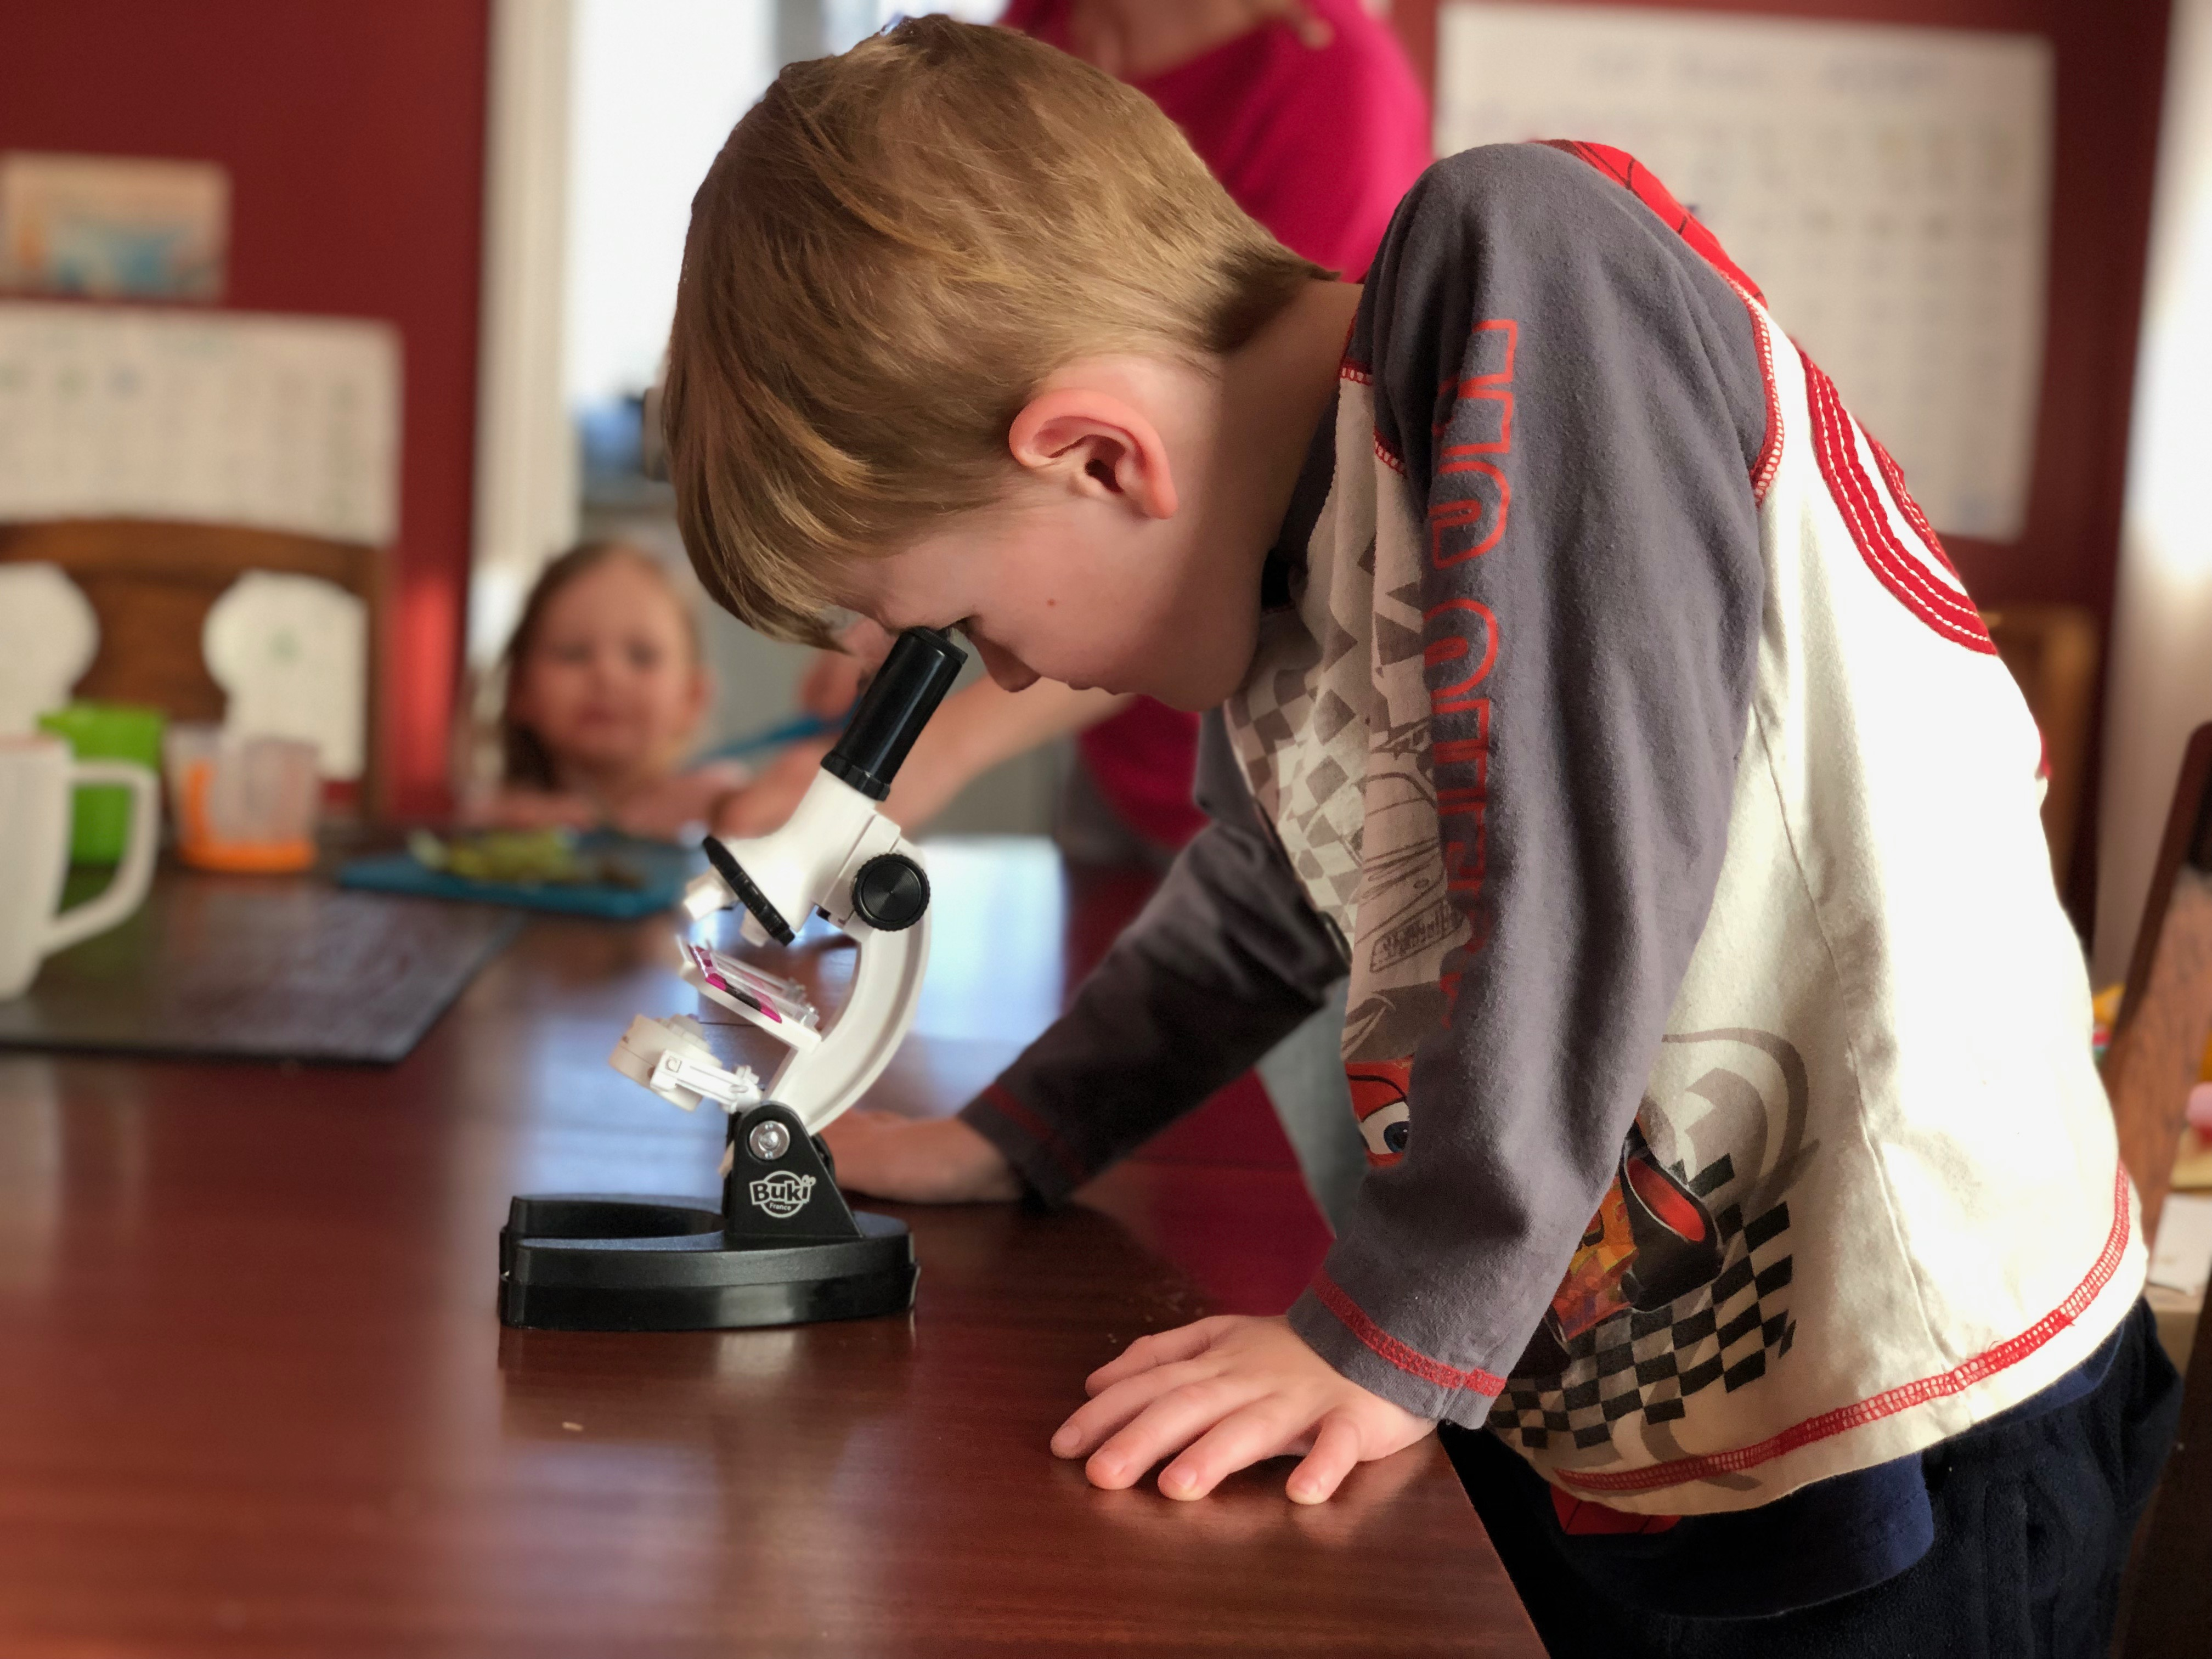 A young boy looks through a microscope